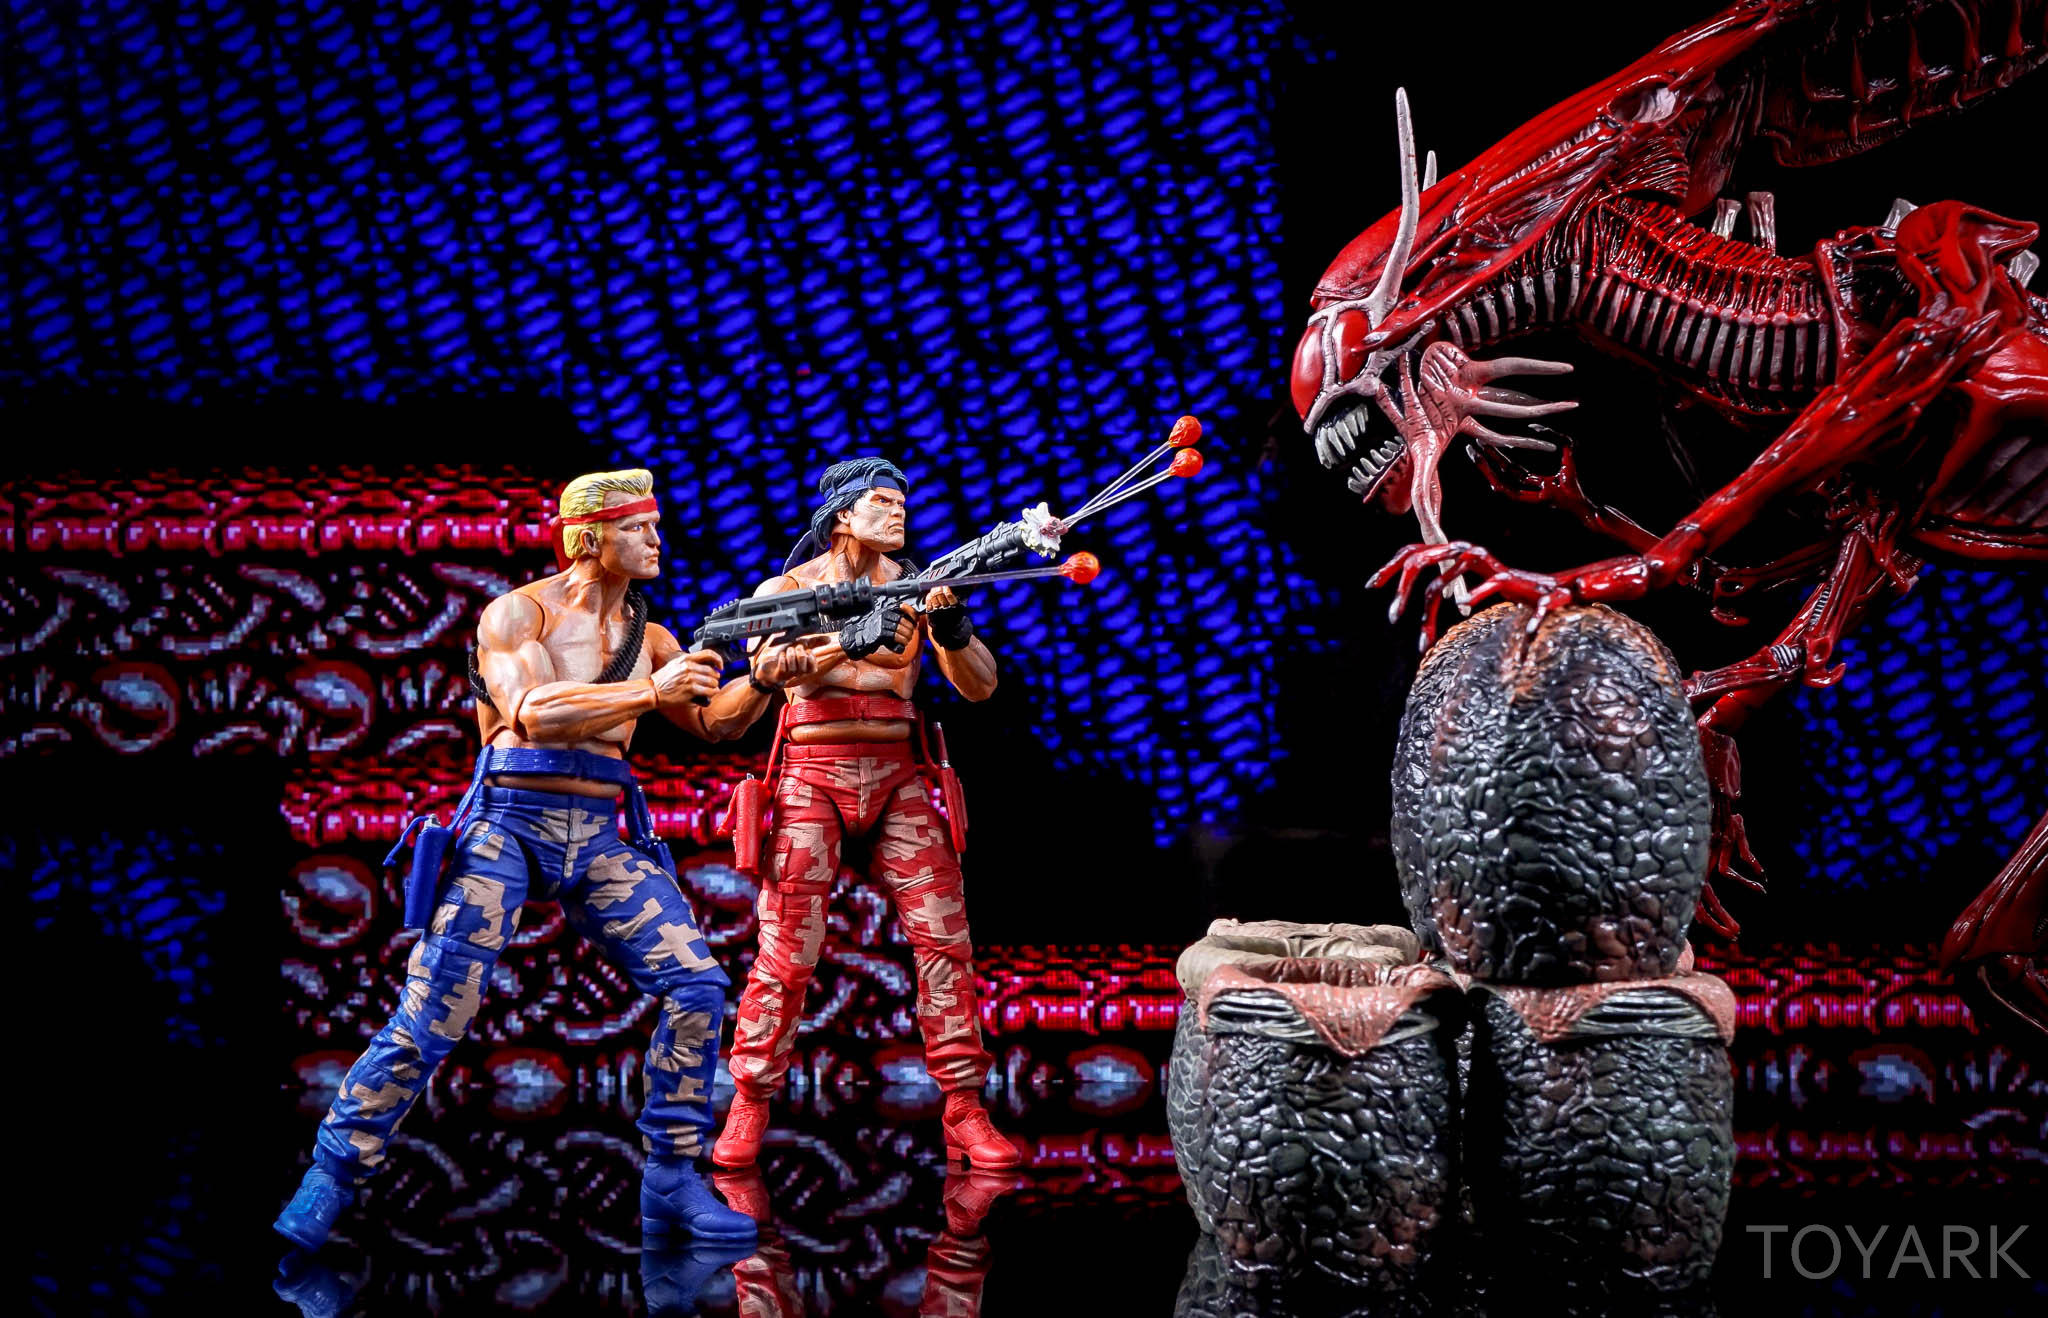 http://news.toyark.com/wp-content/uploads/sites/4/2016/08/NECA-Contra-VGA-062.jpg